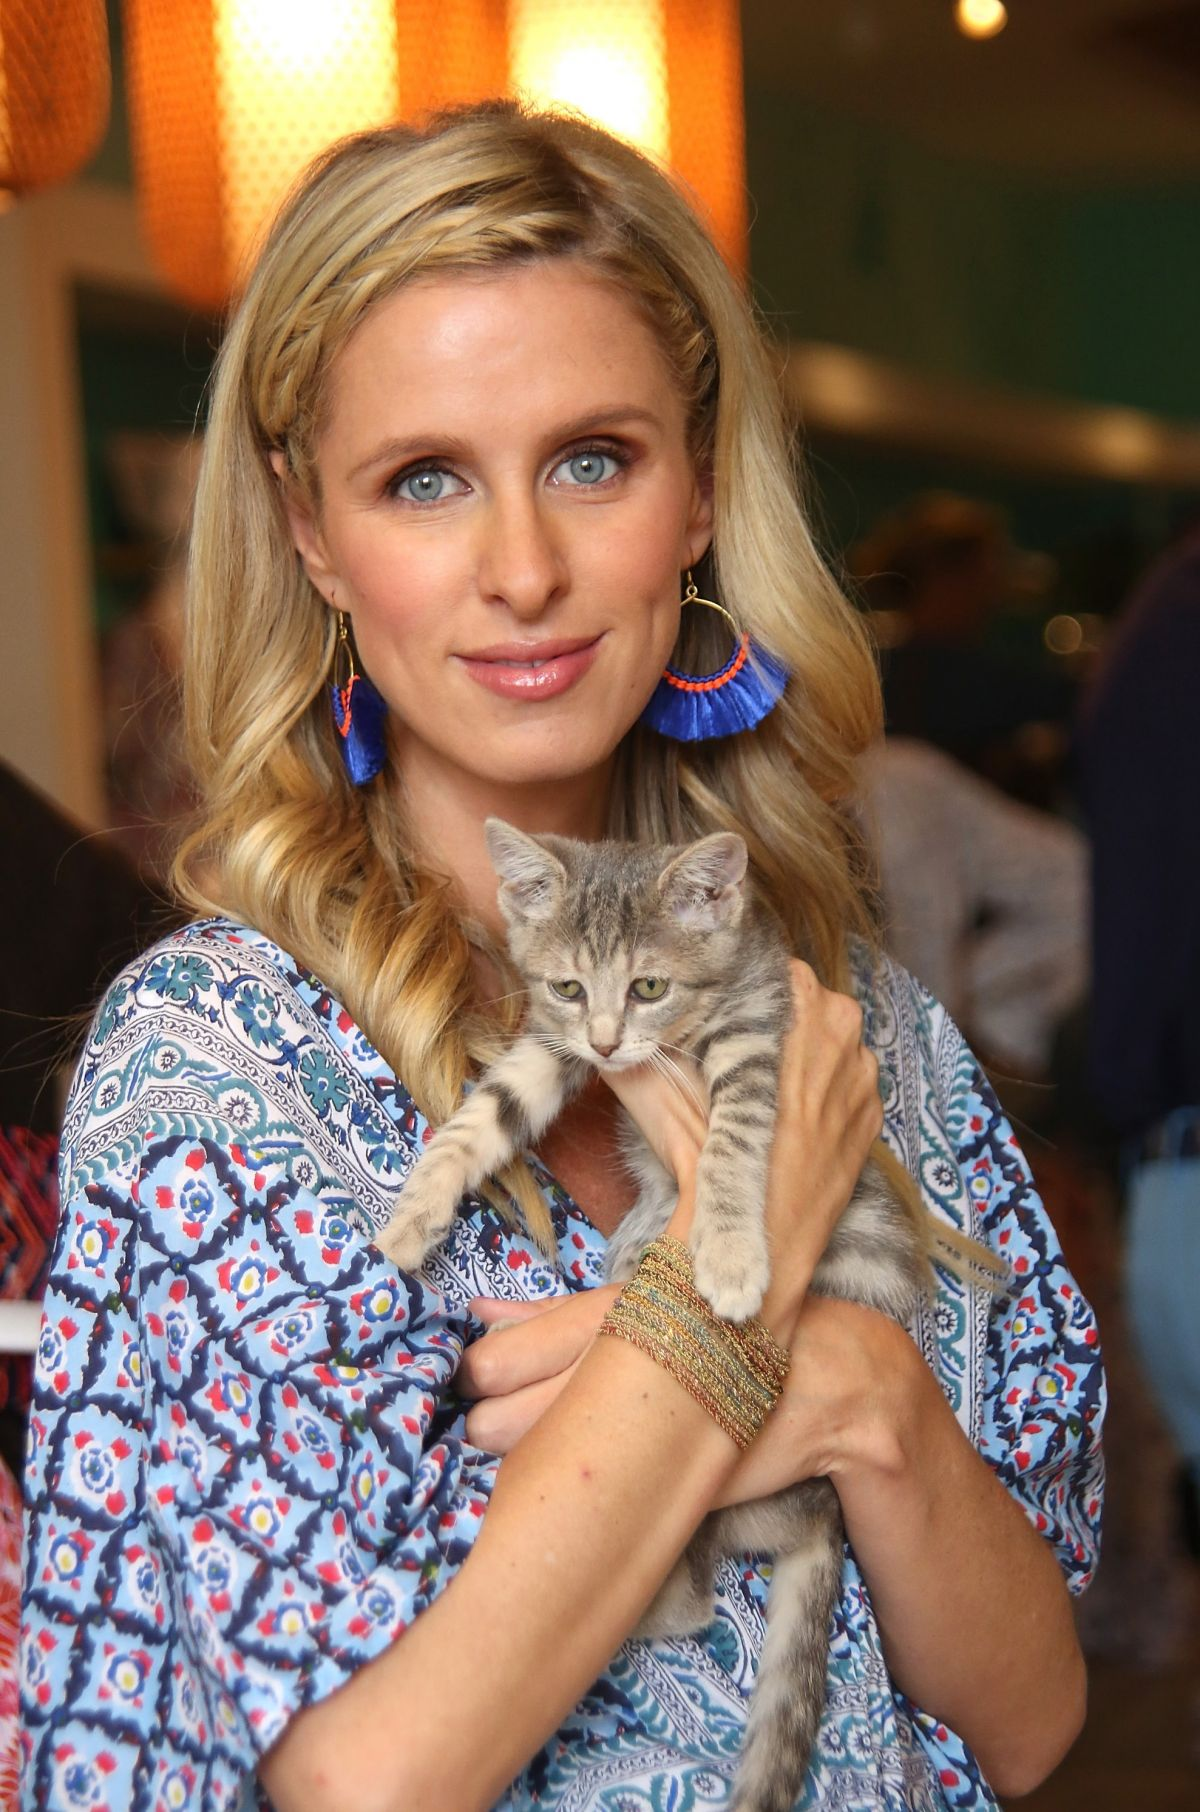 NICKY HILTON at Roller Rabbit Charity Shopping Event in New York 08/12/2017